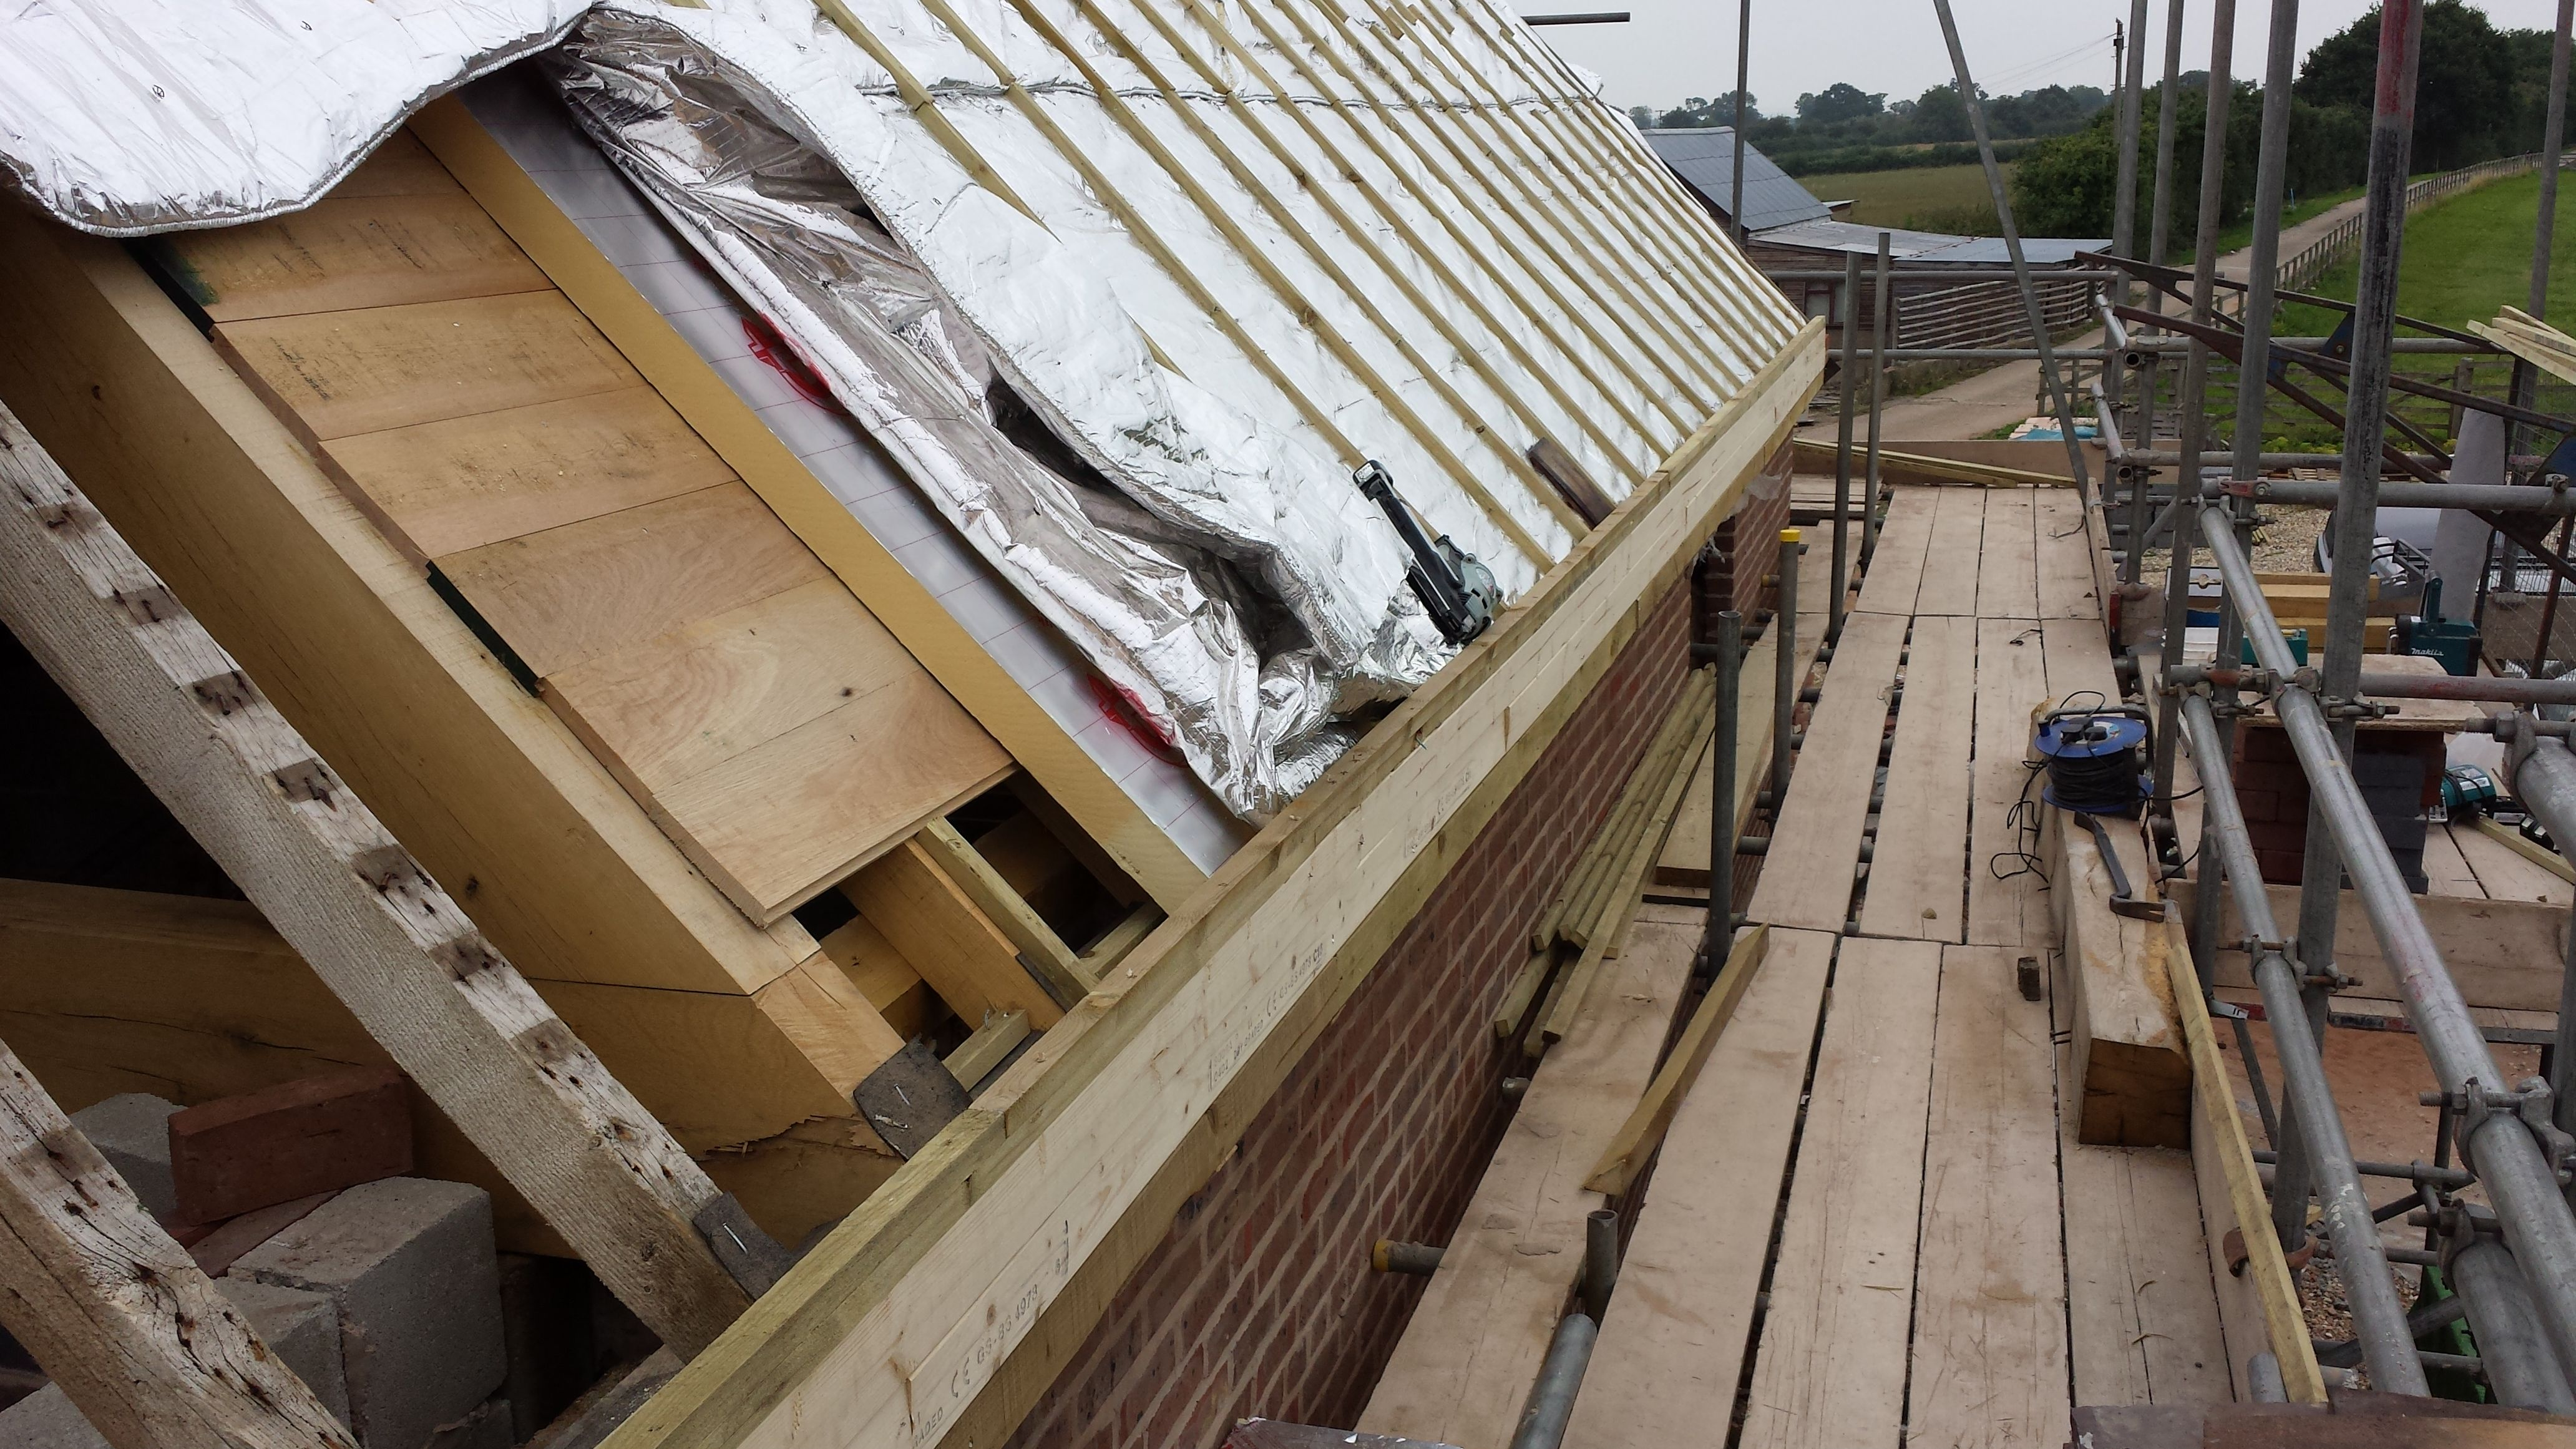 Phot Showing Built Up Roof Rafter With A 20mm Oak Boarding 75mm Celotec On Top Counter Batten Ontop Of Insulation Fixed With Spax 160mm Torx Head S Projecten